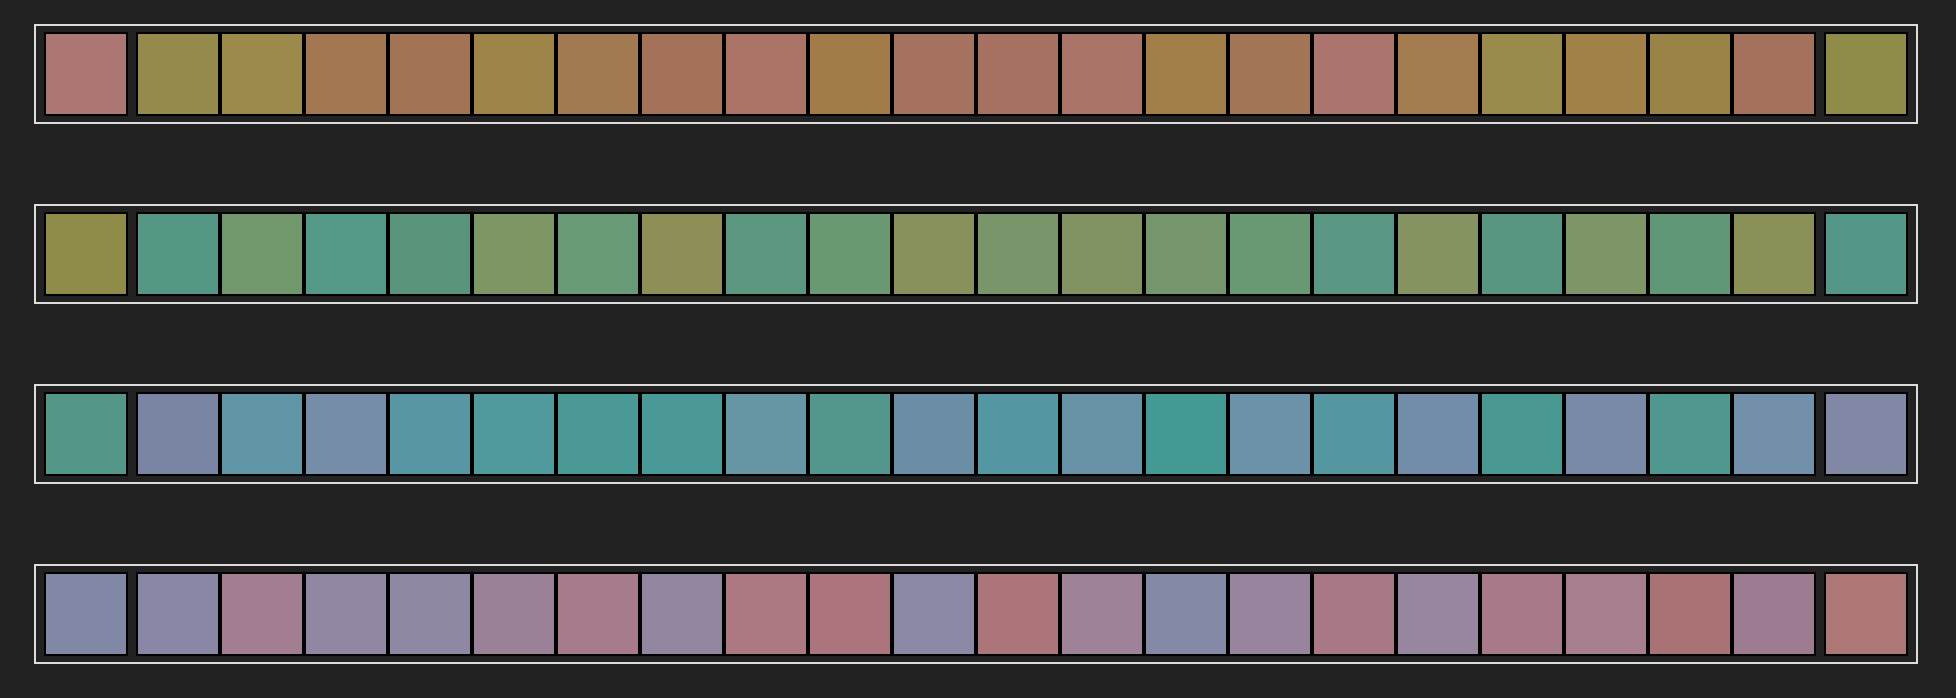 Game order colors - Hue Test Drag And Drop The Colors In Each Row To Arrange Them By Hue Order